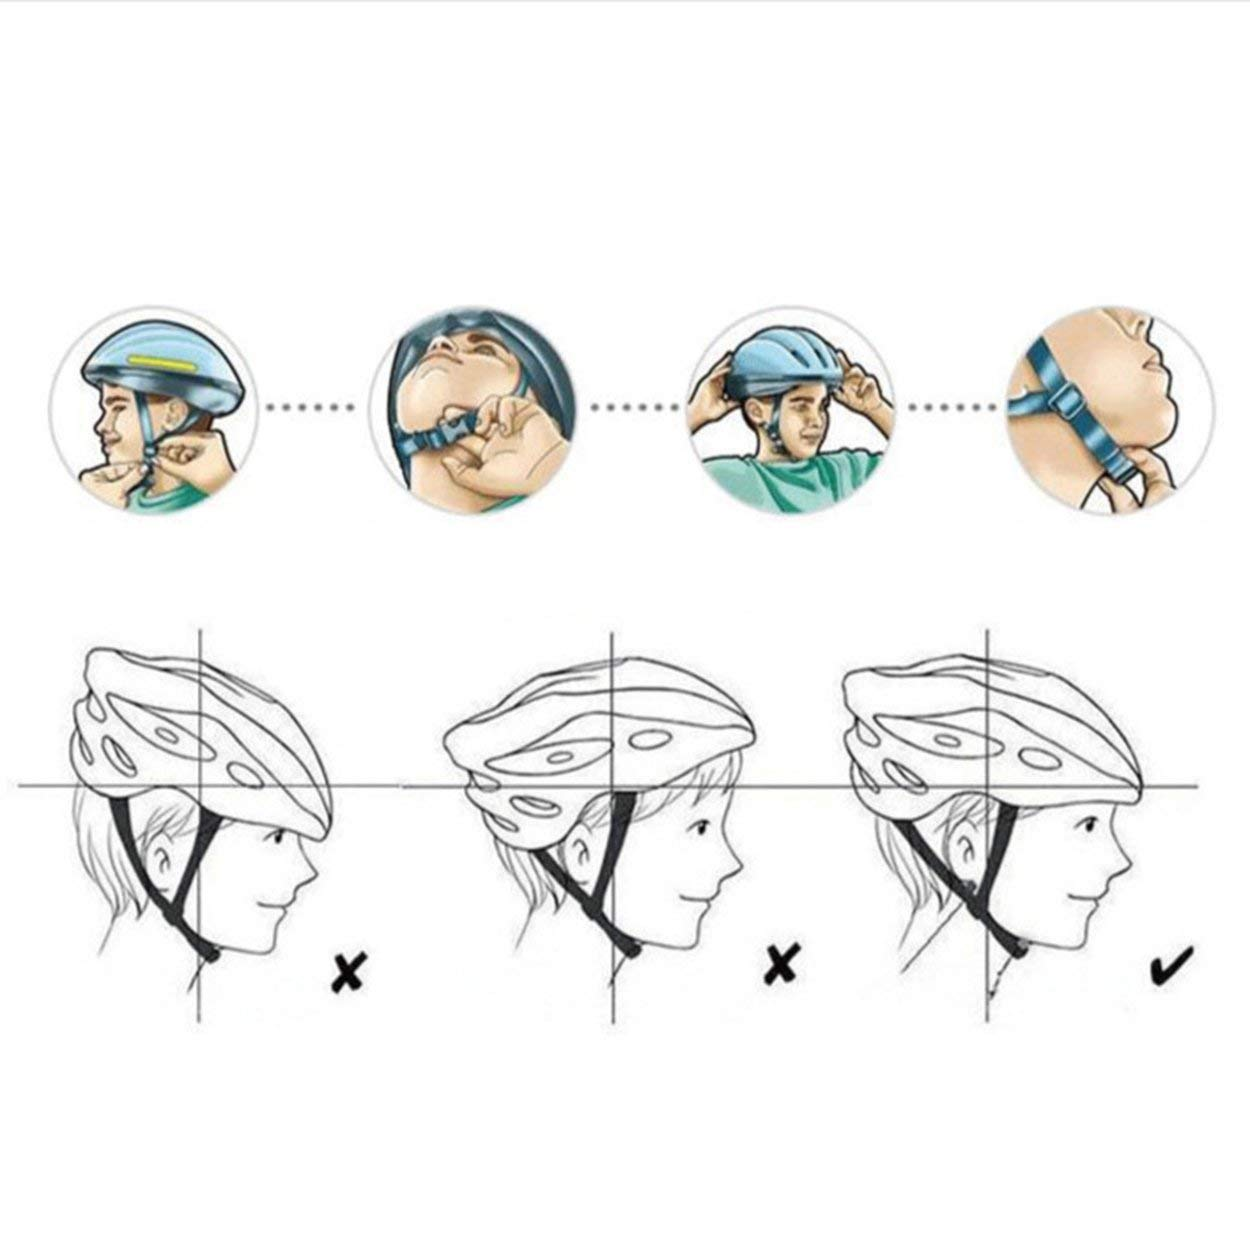 anyilon for Bike Helmet Cycle Helmet Adjustable Thrasher for Adult with Detachable Liner with Water and Dust Resistant Cover